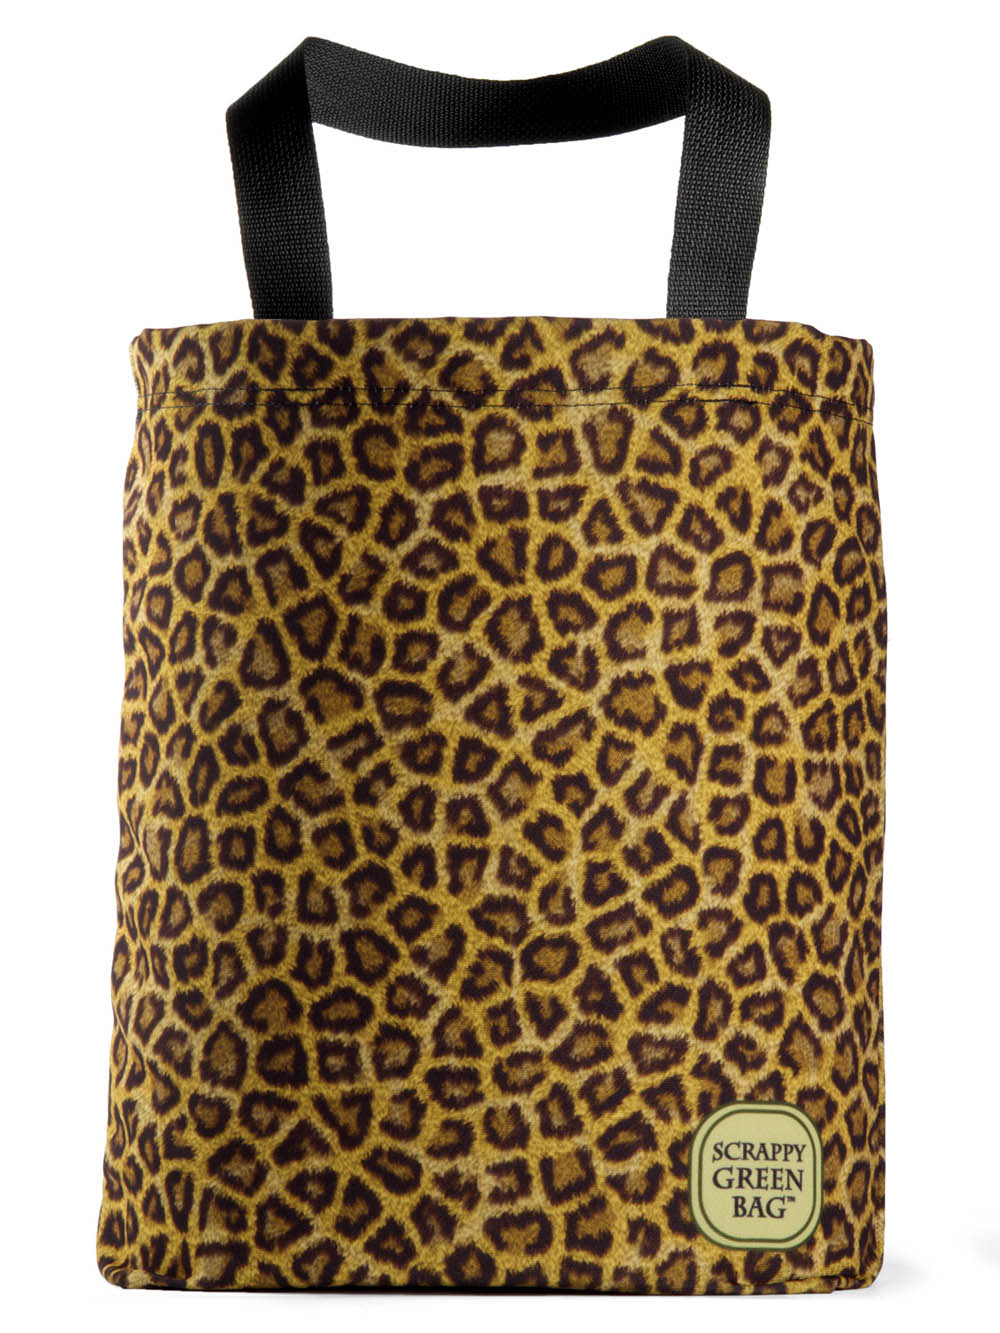 Animal series | Leopard print tote | Scrappy Products